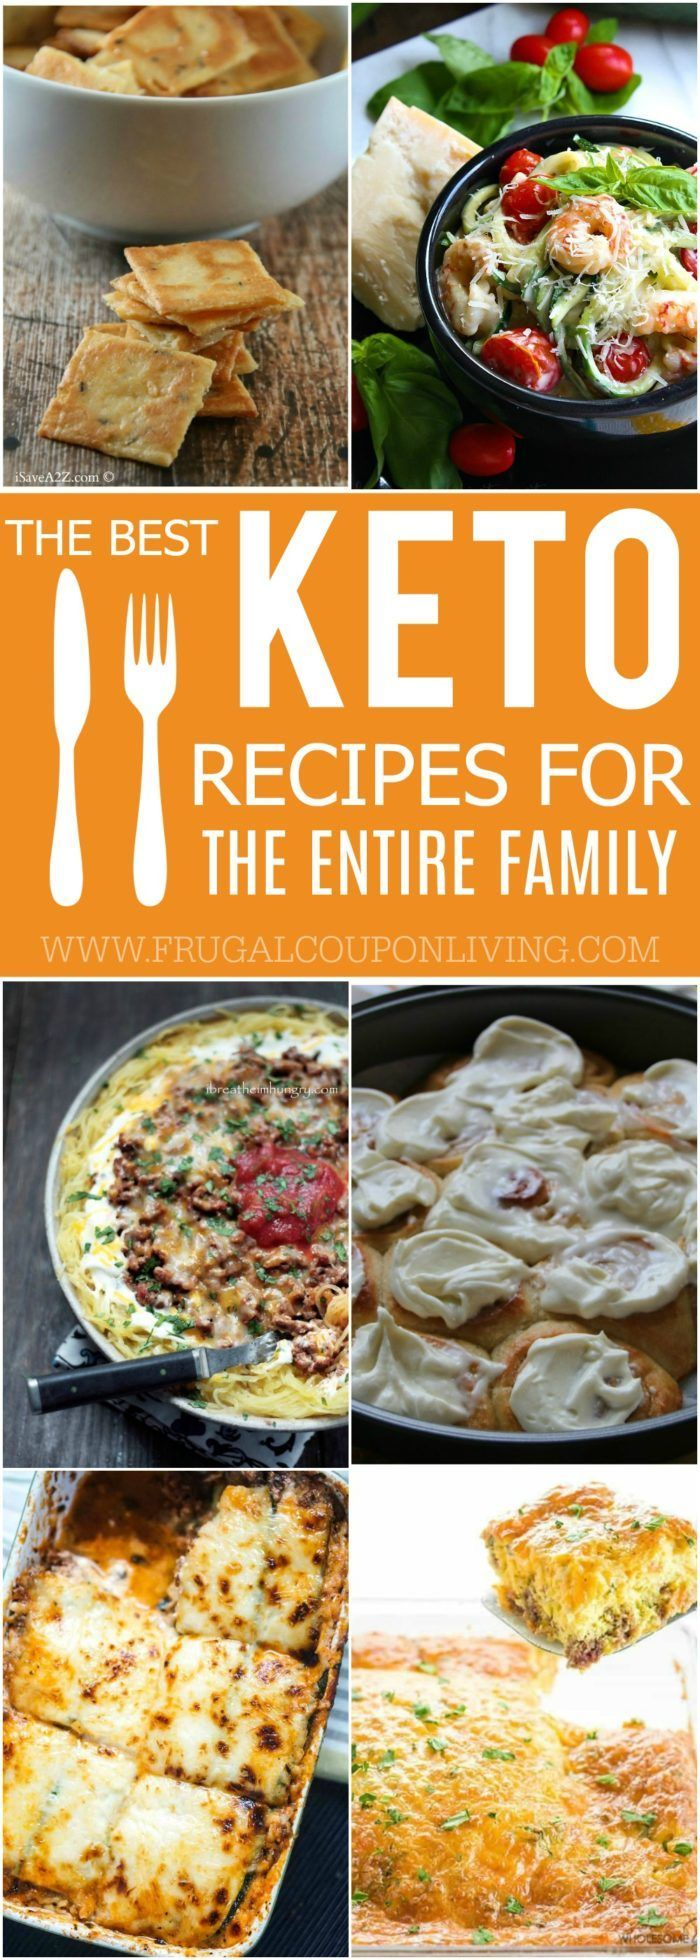 Keto Recipes for the Entire Family. These mouthwatering, low carb recipes are so tasty it might feel sinful or indulgent eating them. Enjoy healthy comfort food dishes including keto-friendly casseroles, soups, breads, and even desserts! #keto #ketorecipes #recipes #dinner #familydinners #lowcarbrecipe #healhtyrecipe #healthyliving #ketogenic #ketogenicdiet #ketodiet